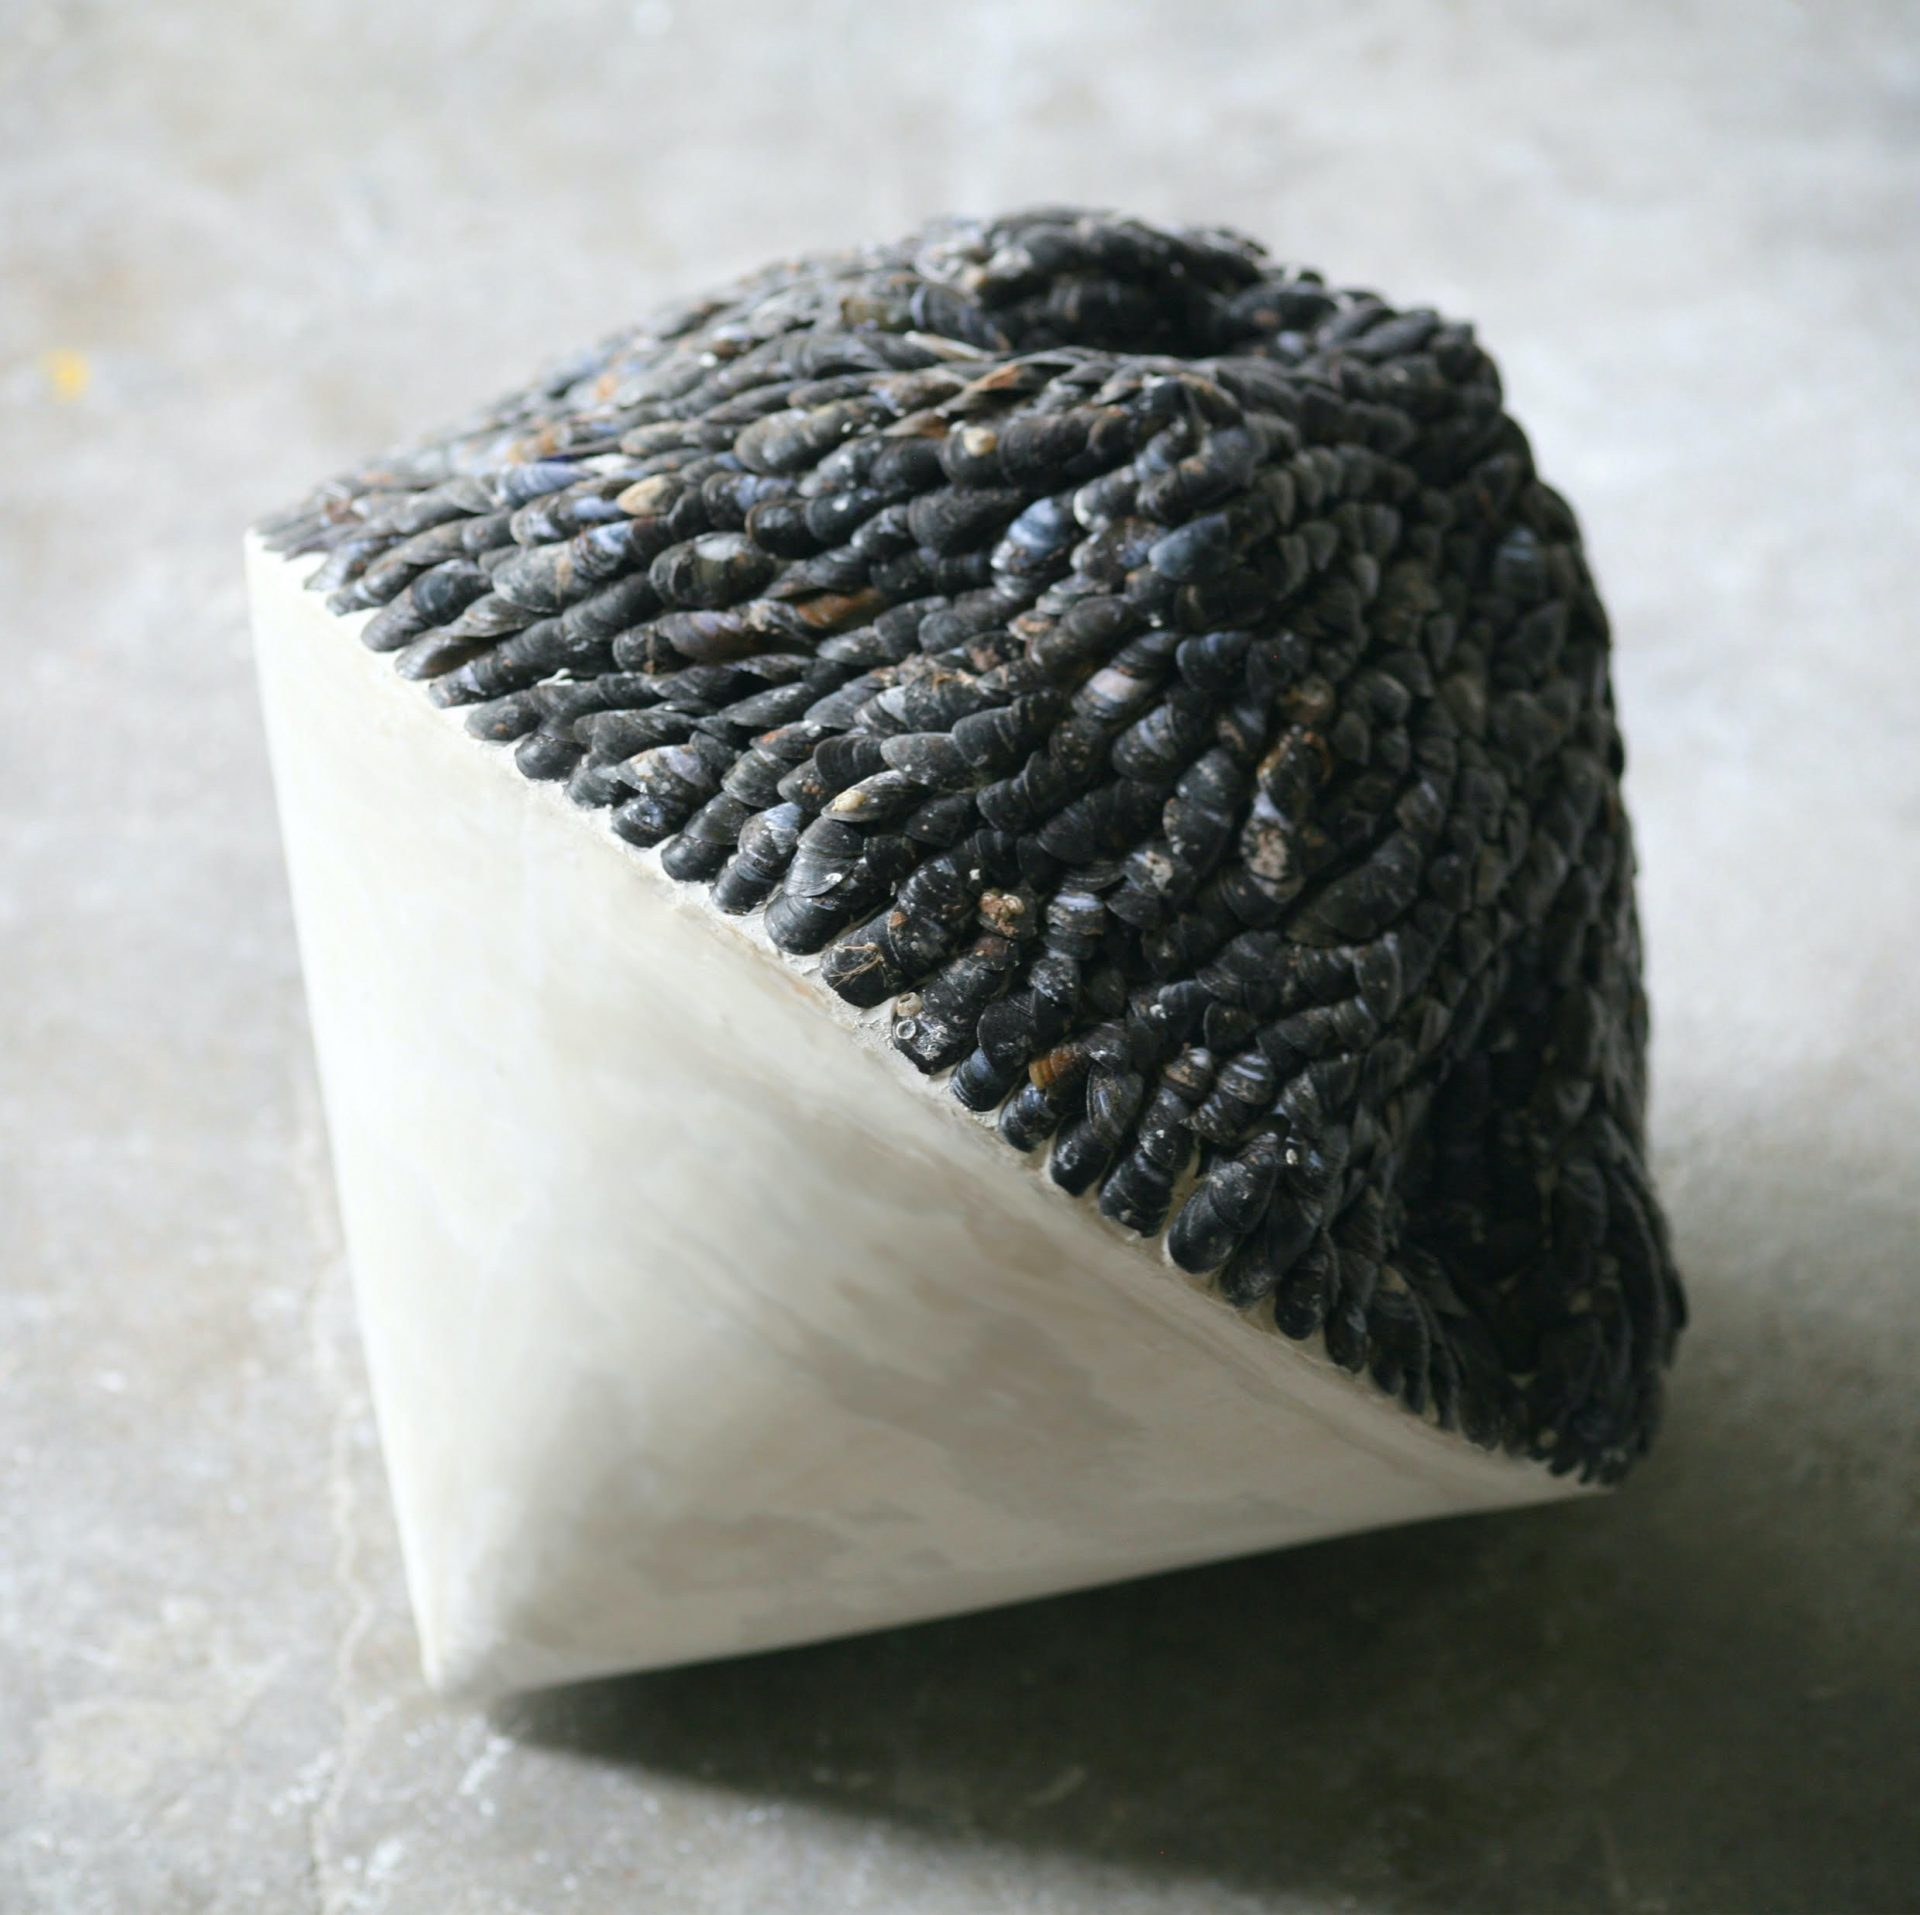 Stephanie Tudor Sculpture with mussels